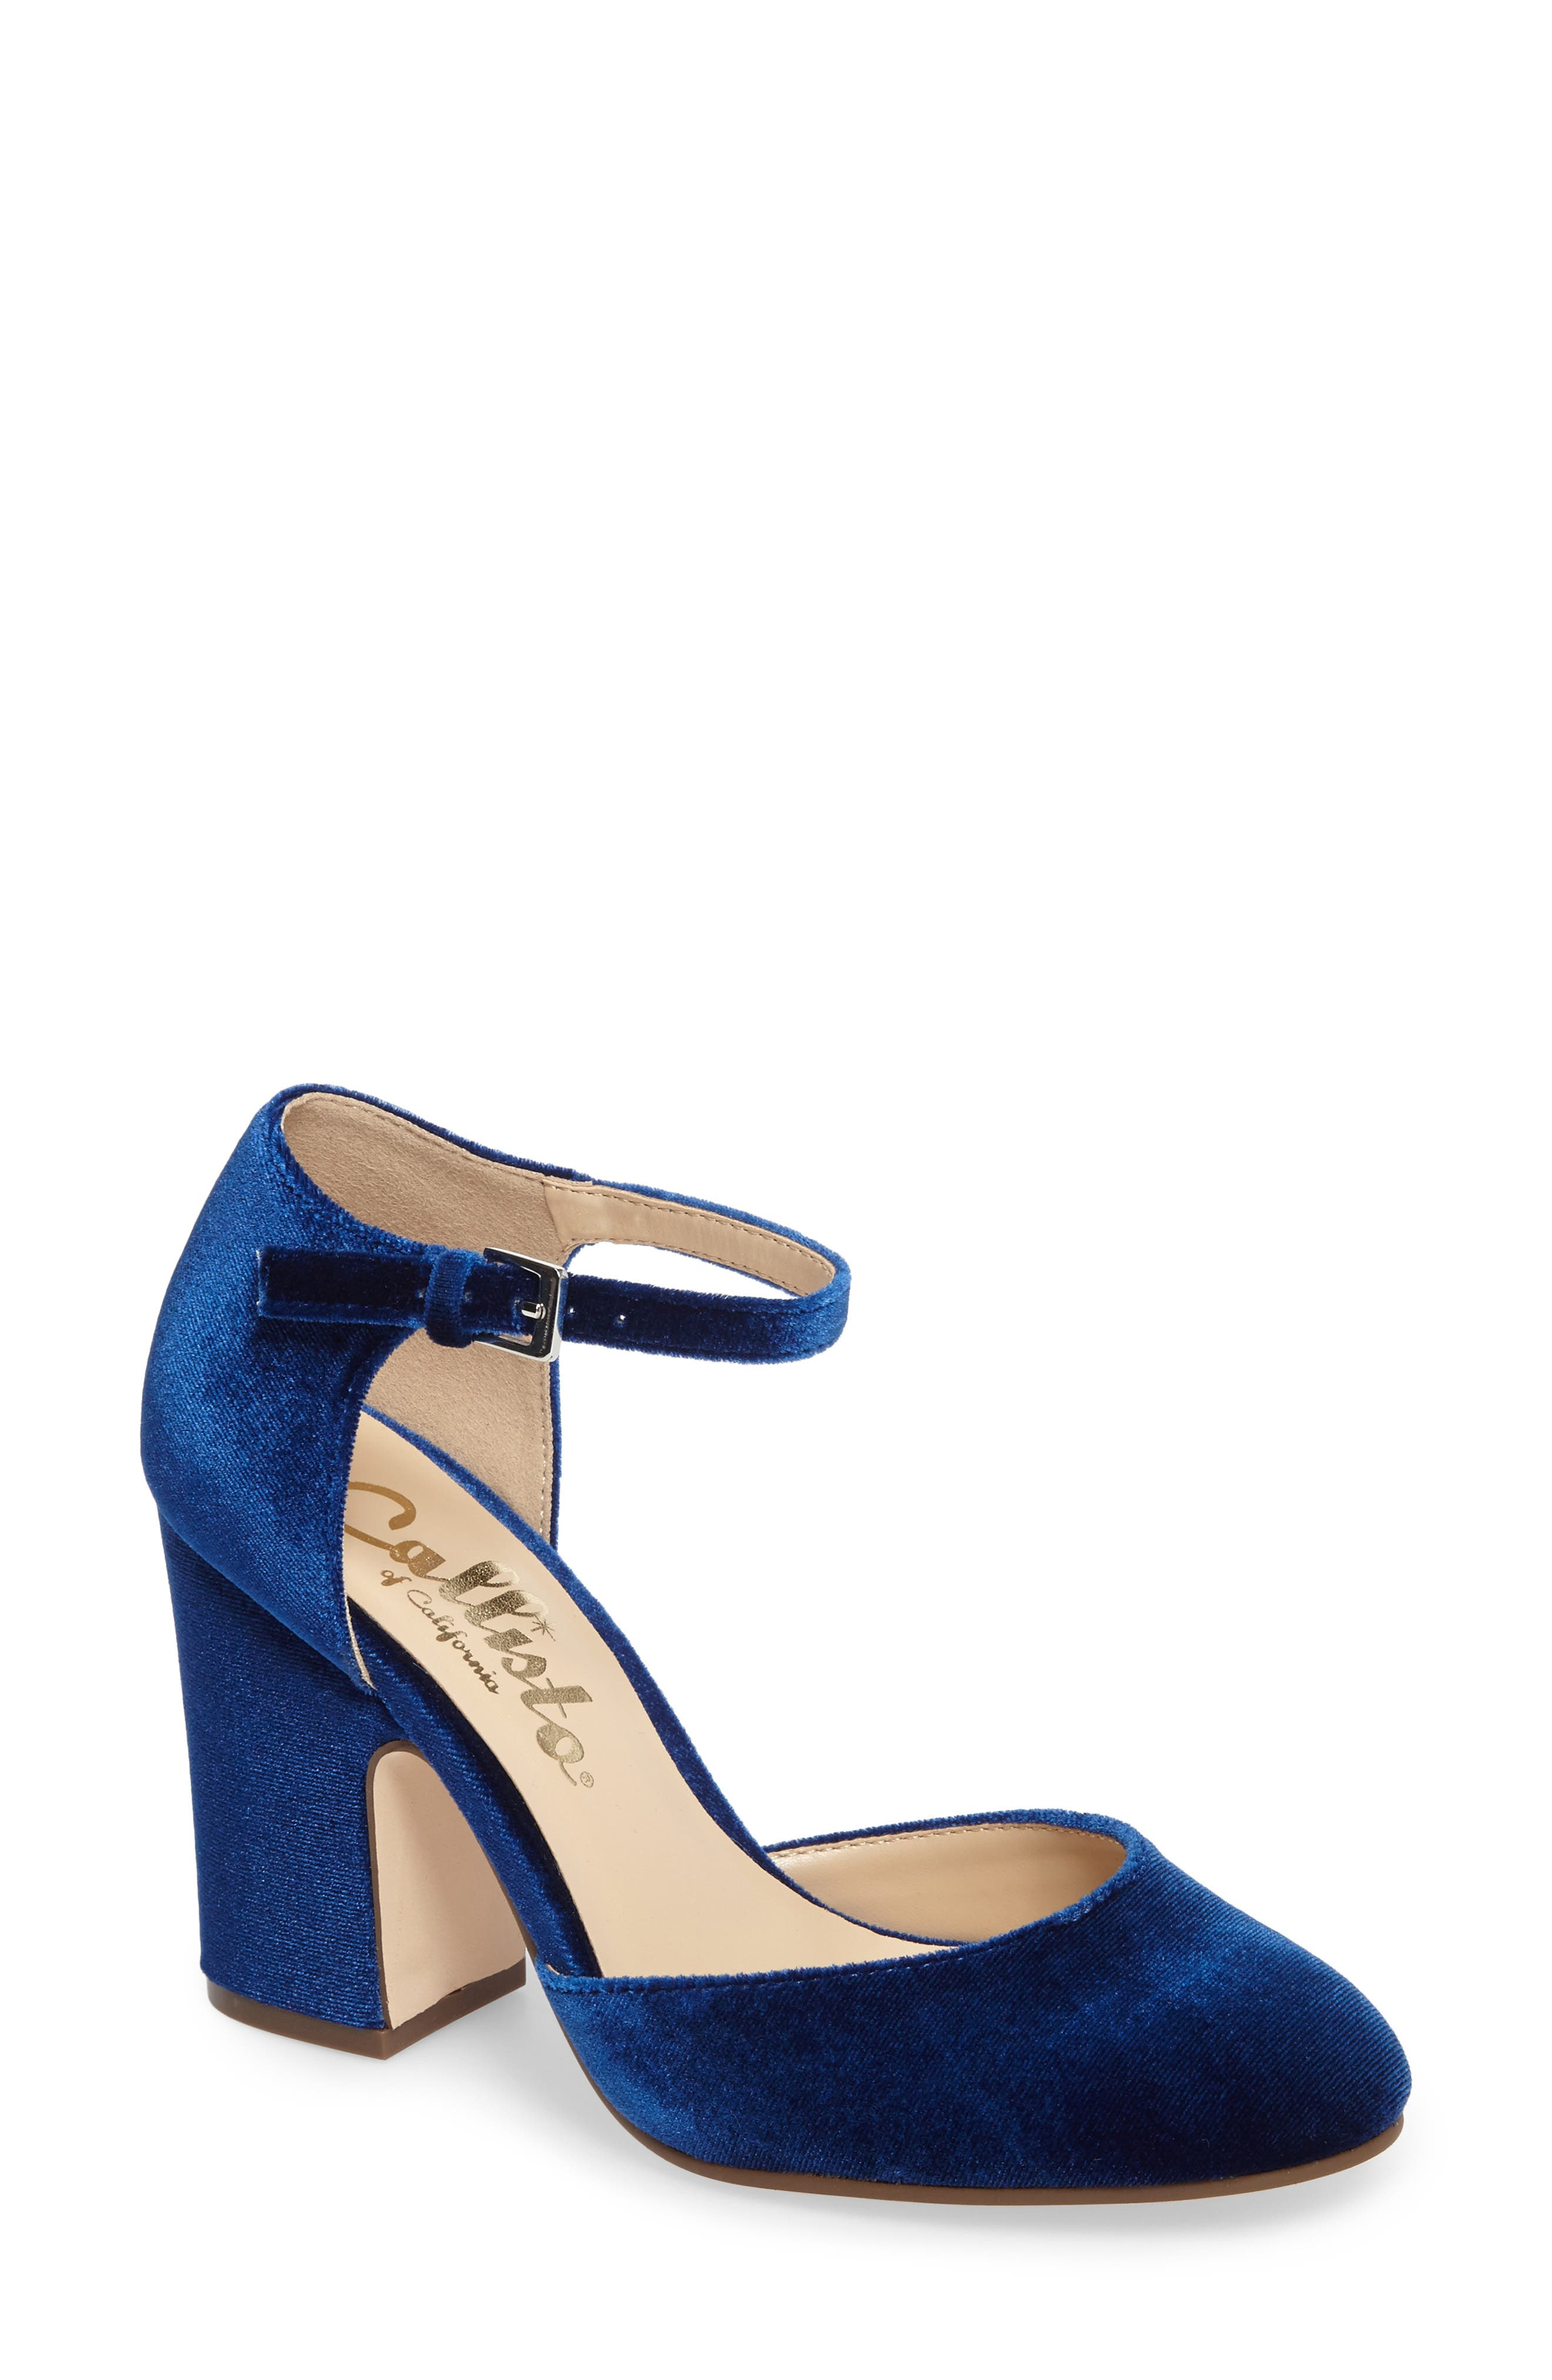 Main Image - Callisto Indeego Ankle Strap Pump (Women)